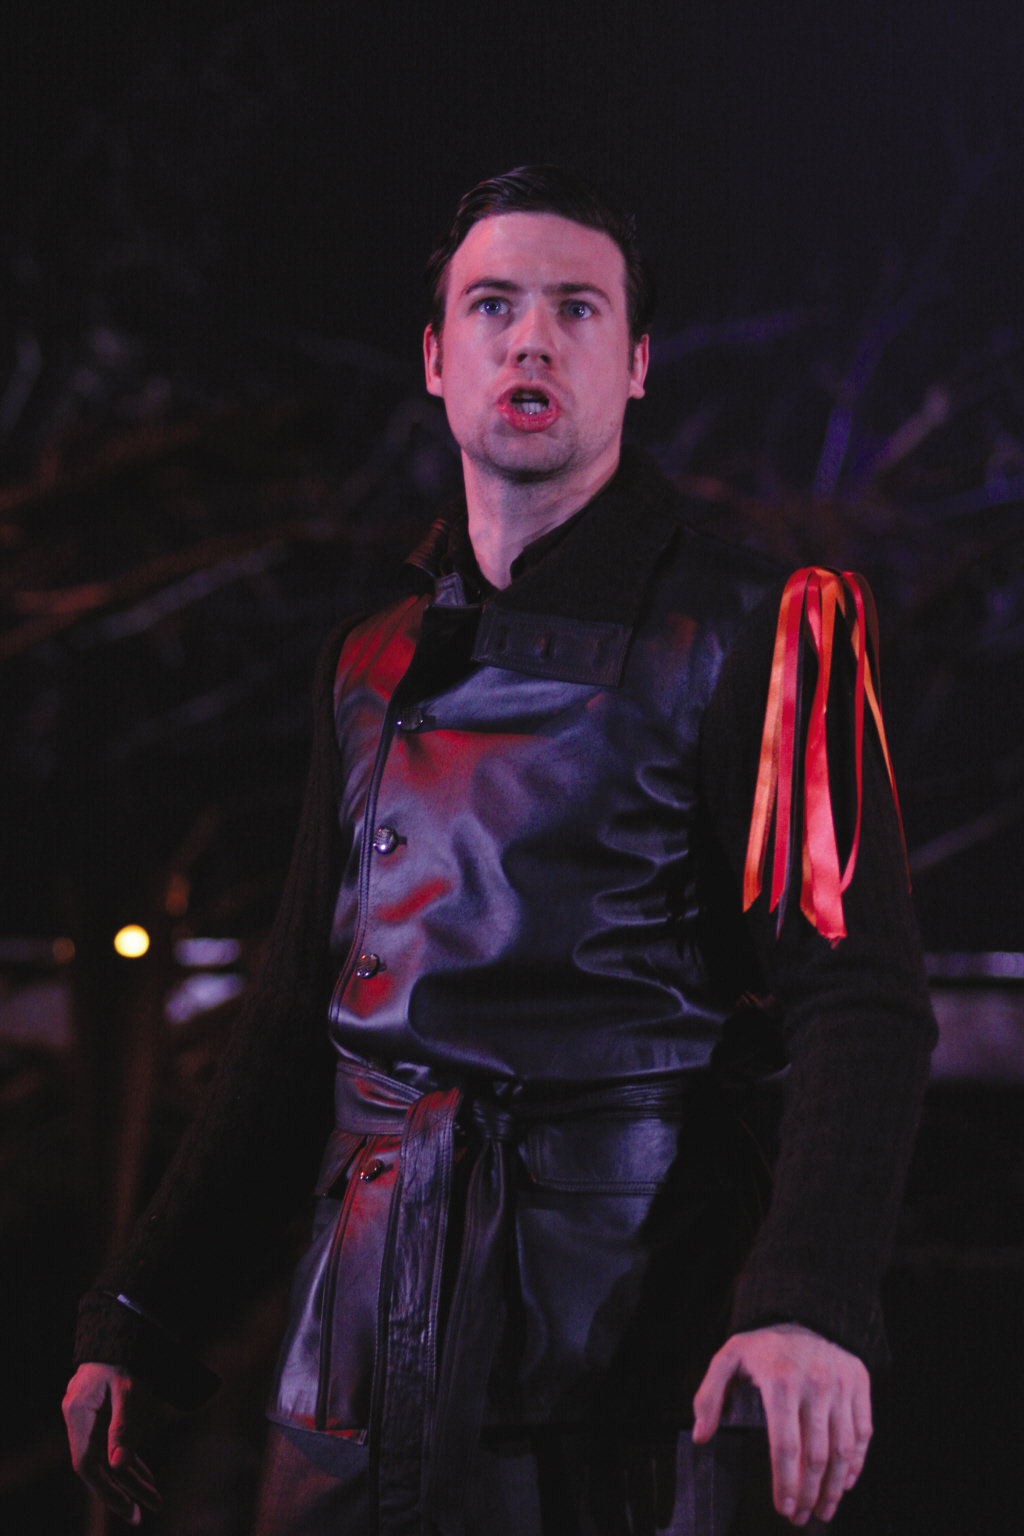 Tybalt in black with red ribbons on his arm.